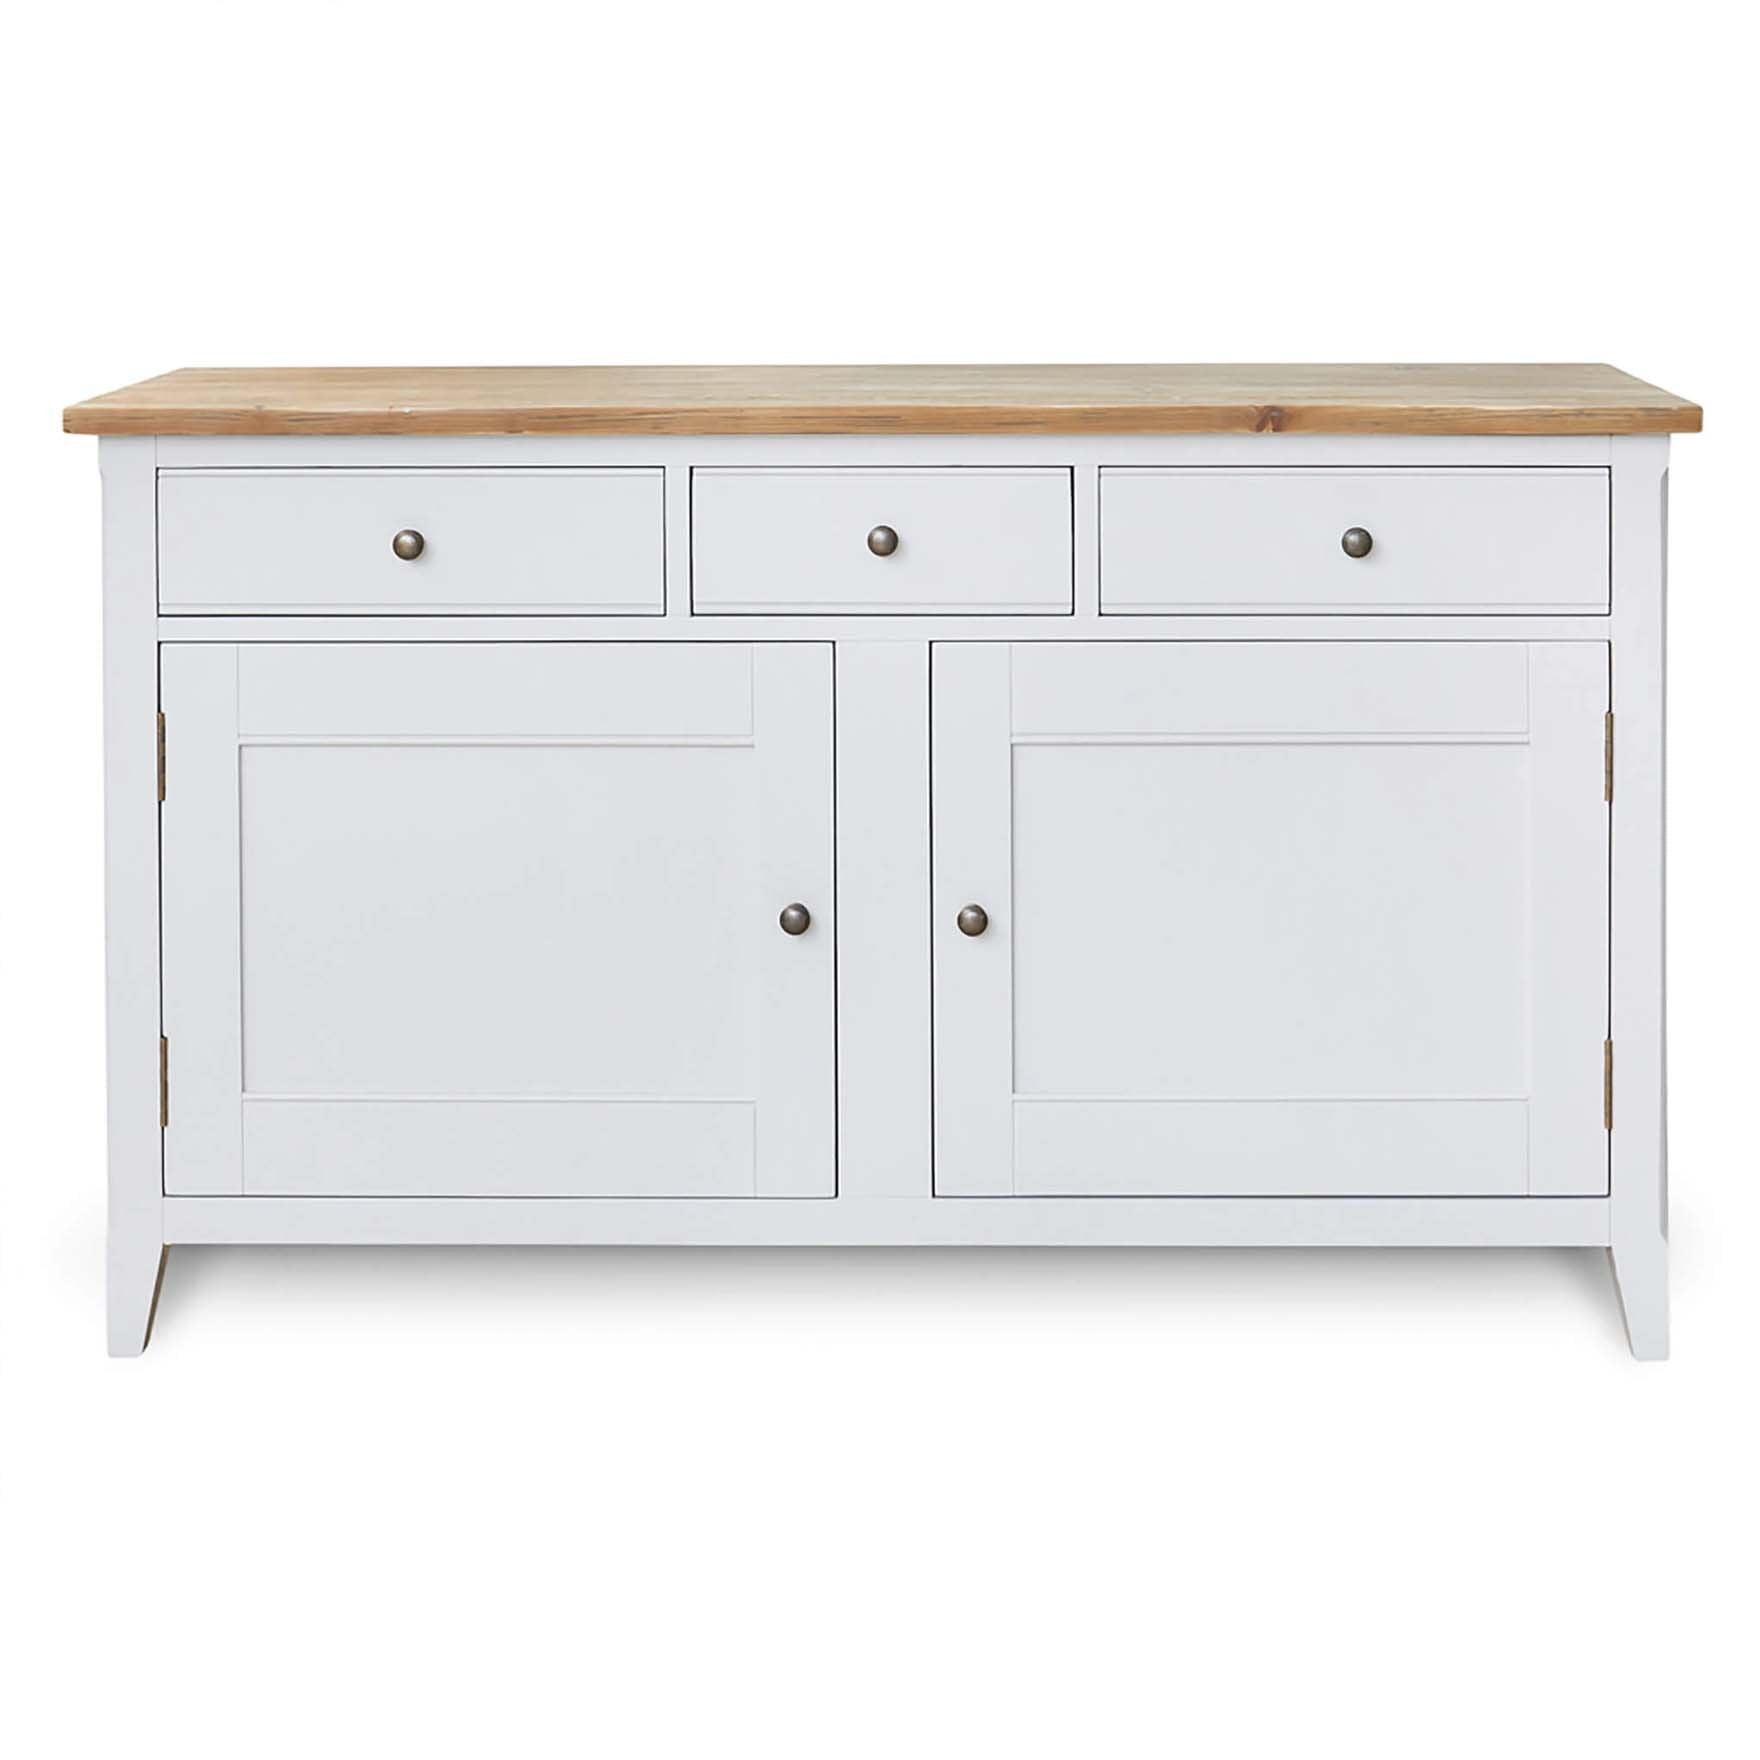 Signature Grey Large Sideboard by Roseland Furniture